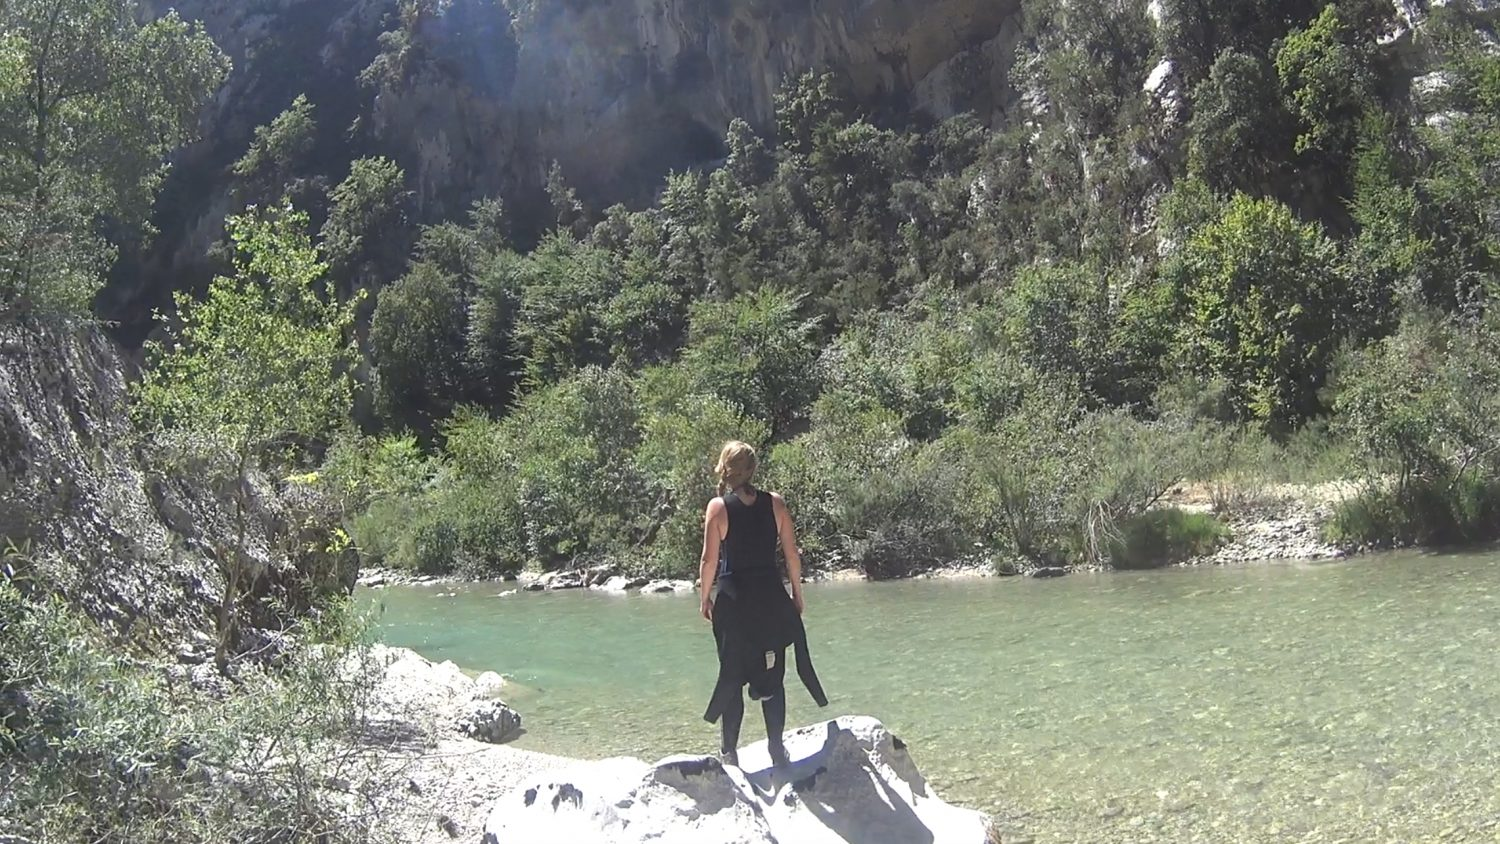 Review: Buena Vista Rafting Review – Adventure in the Gorges du Verdon